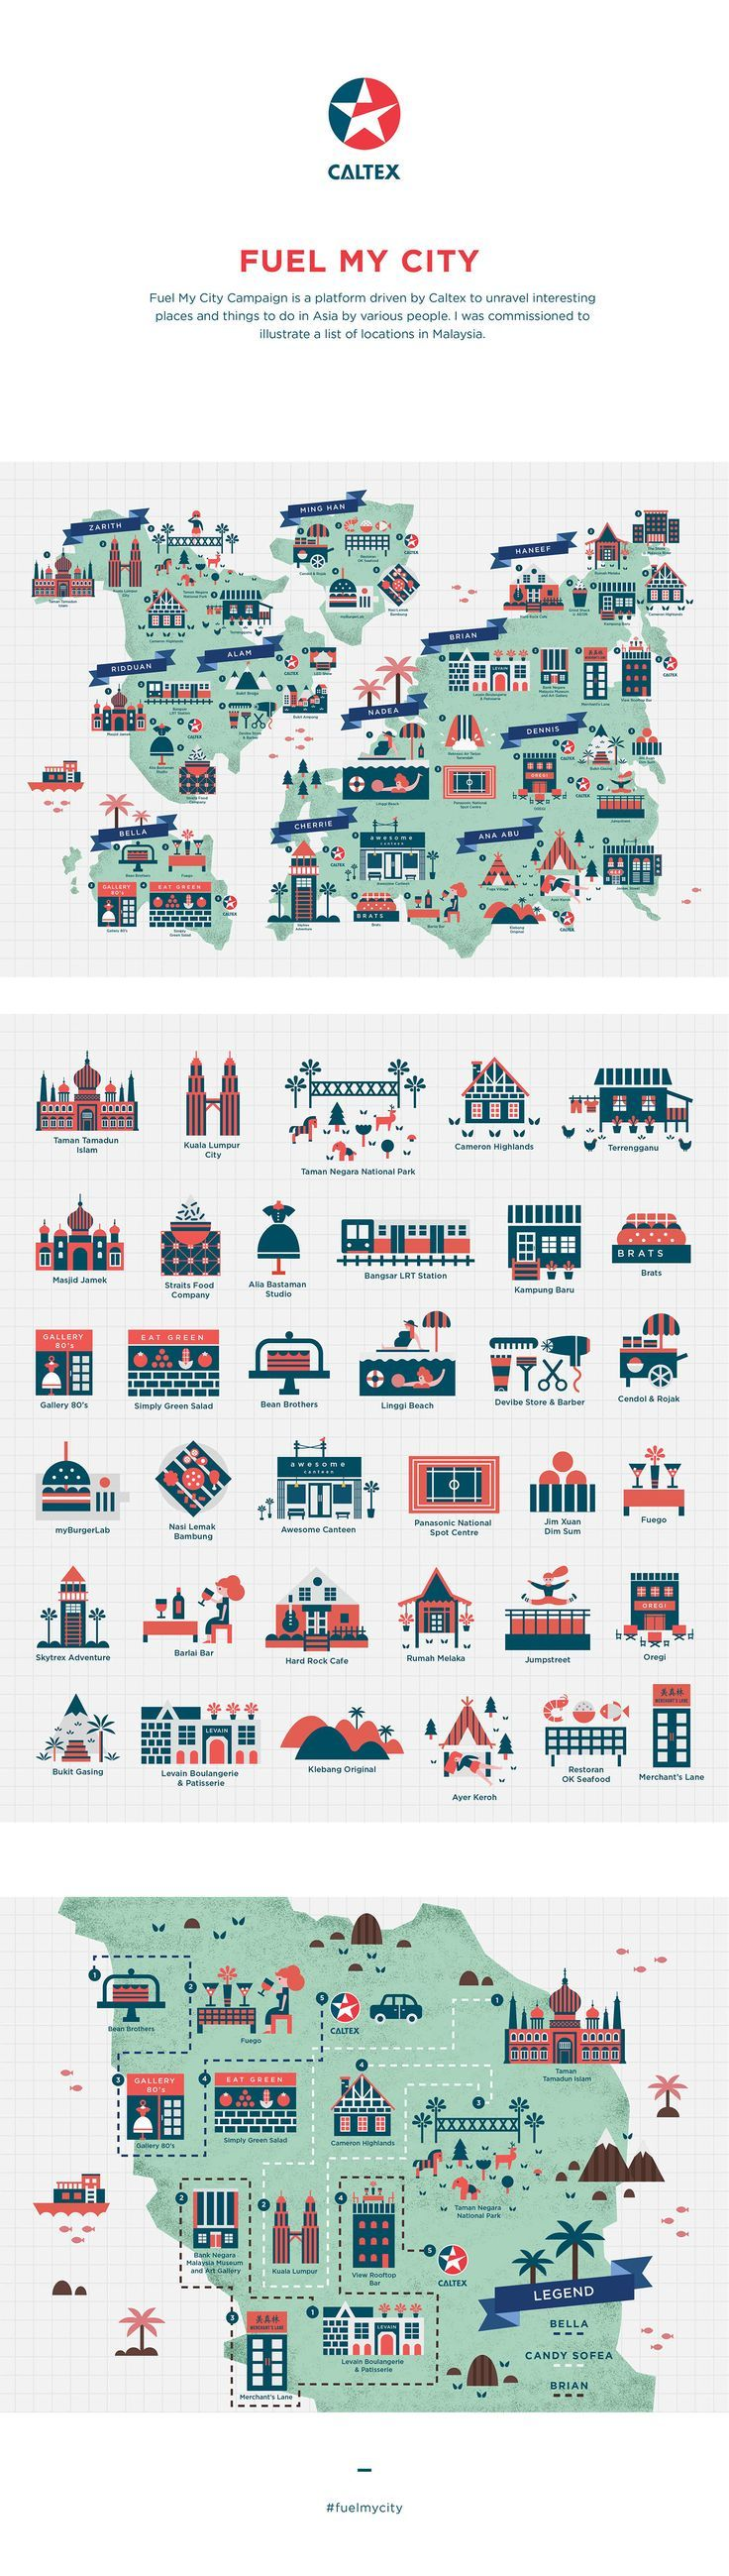 Ever wanted to make a map of Malaysia? These symbols would go well with it! Map Illustration - Caltex Malaysia on Behance